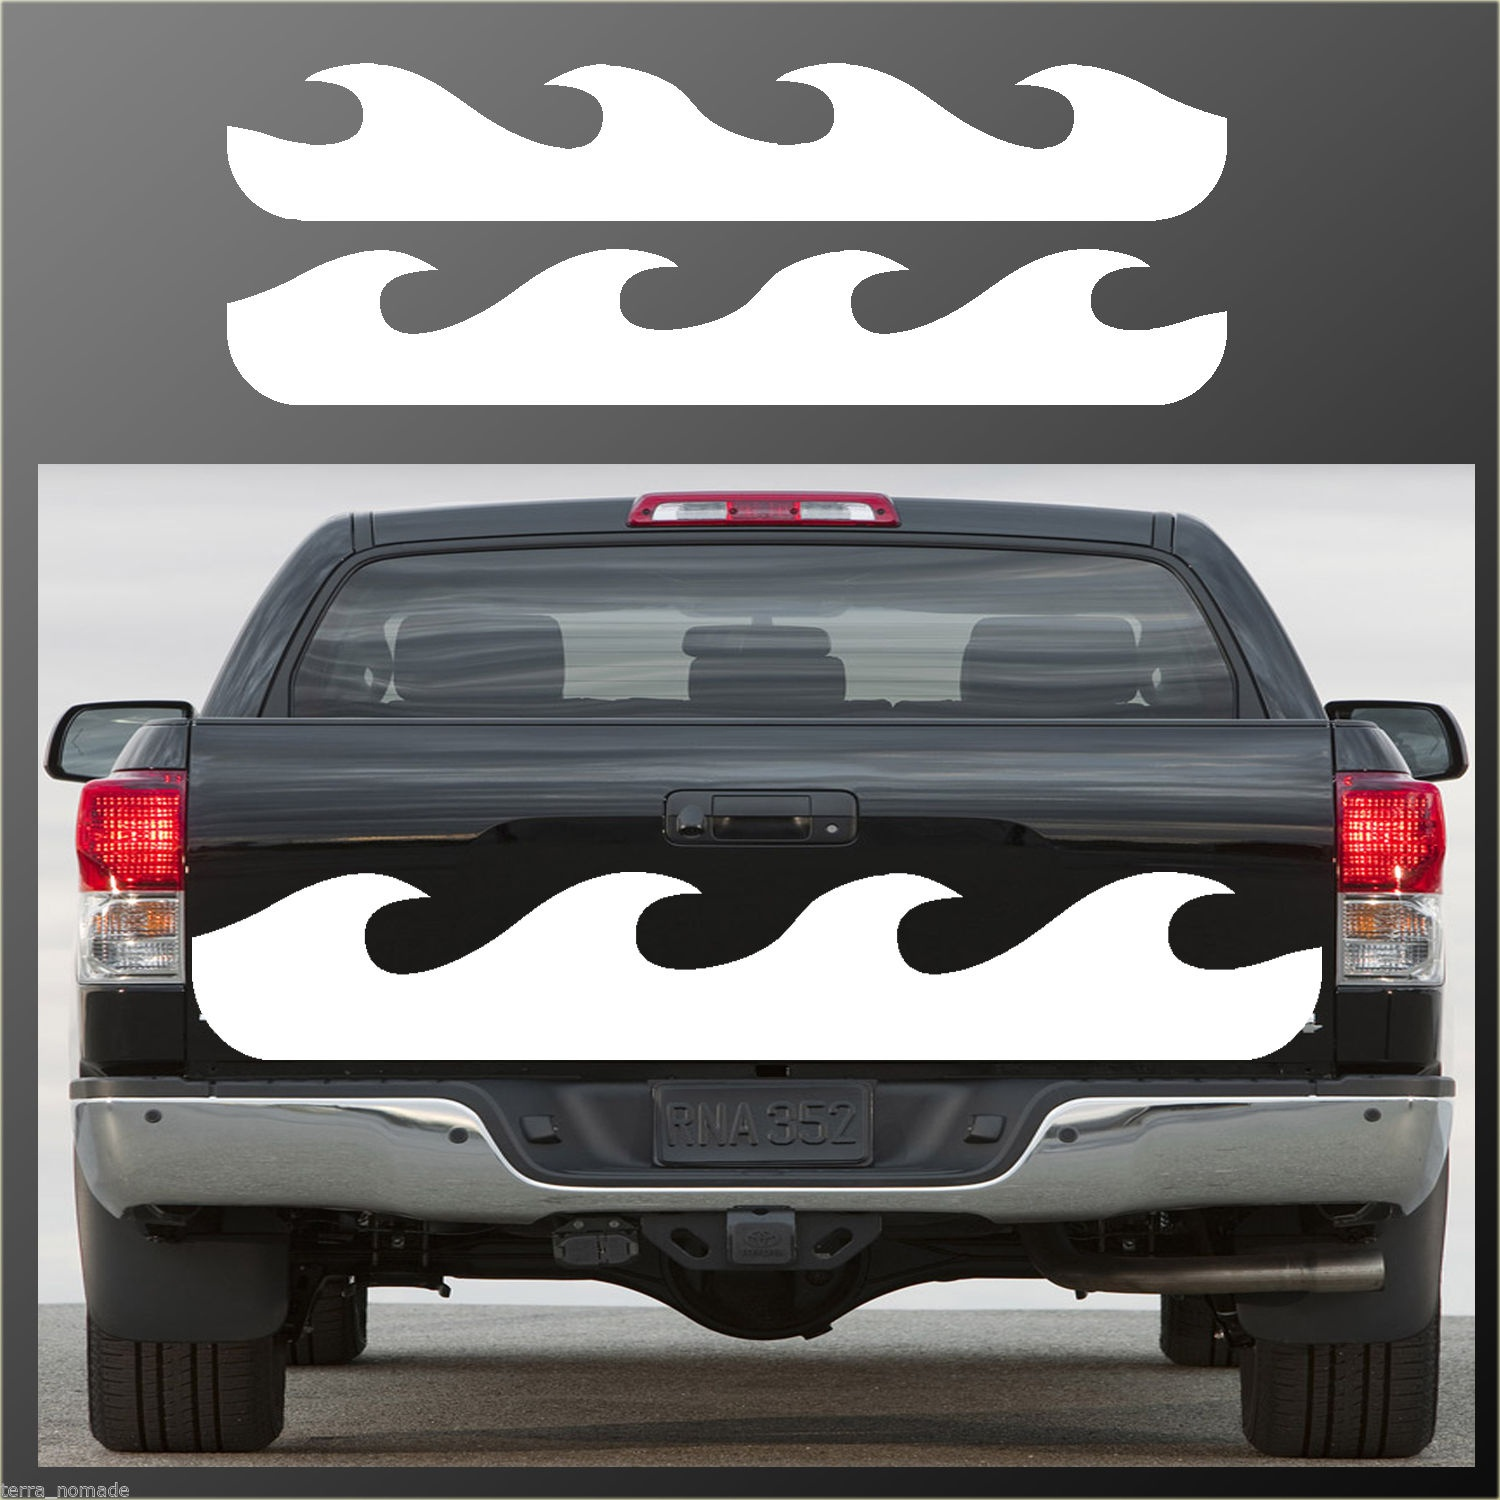 Buy Billabong Stickers And Get Free Shipping On AliExpresscom - Funny decal stickers for carseuro car promotionshop for promotional euro car on aliexpresscom